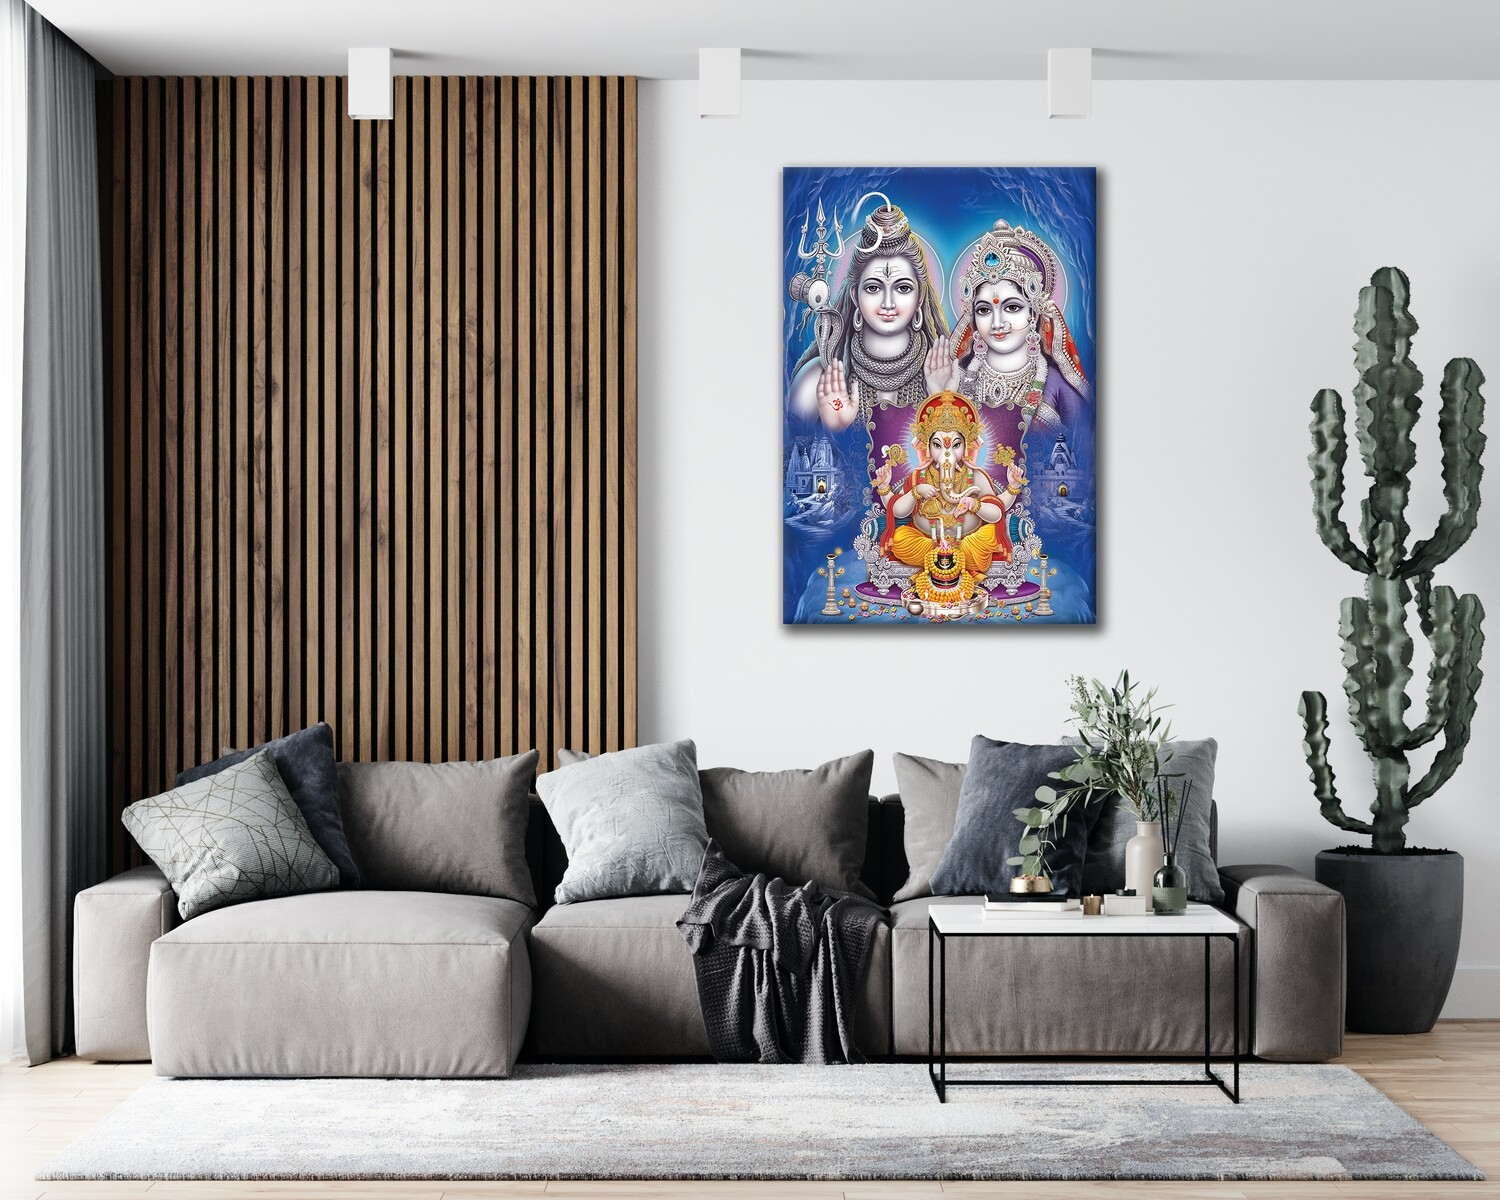 Shiva Parvathy Ganesha Painting -Hindu God Modern Wal lart |Shiva Family Picture Printed on Frameless Acrylic Glass | Ready To Hang